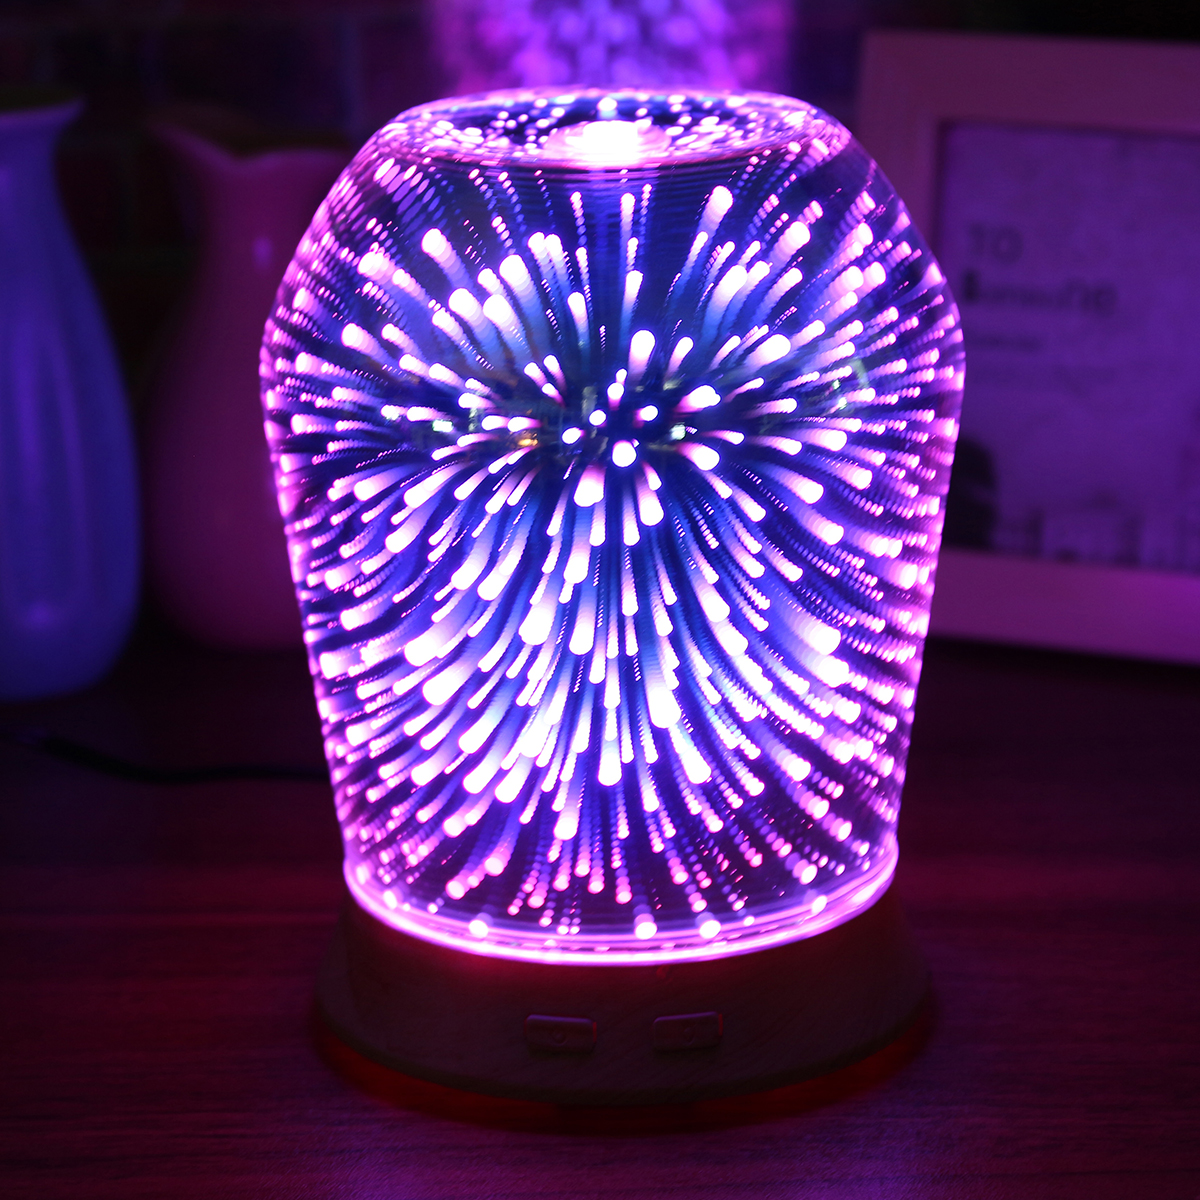 3D LED Ultrasonic Diffuser Humidifier Aromatherapy Essential Oil Diffuser Mist Humidifier